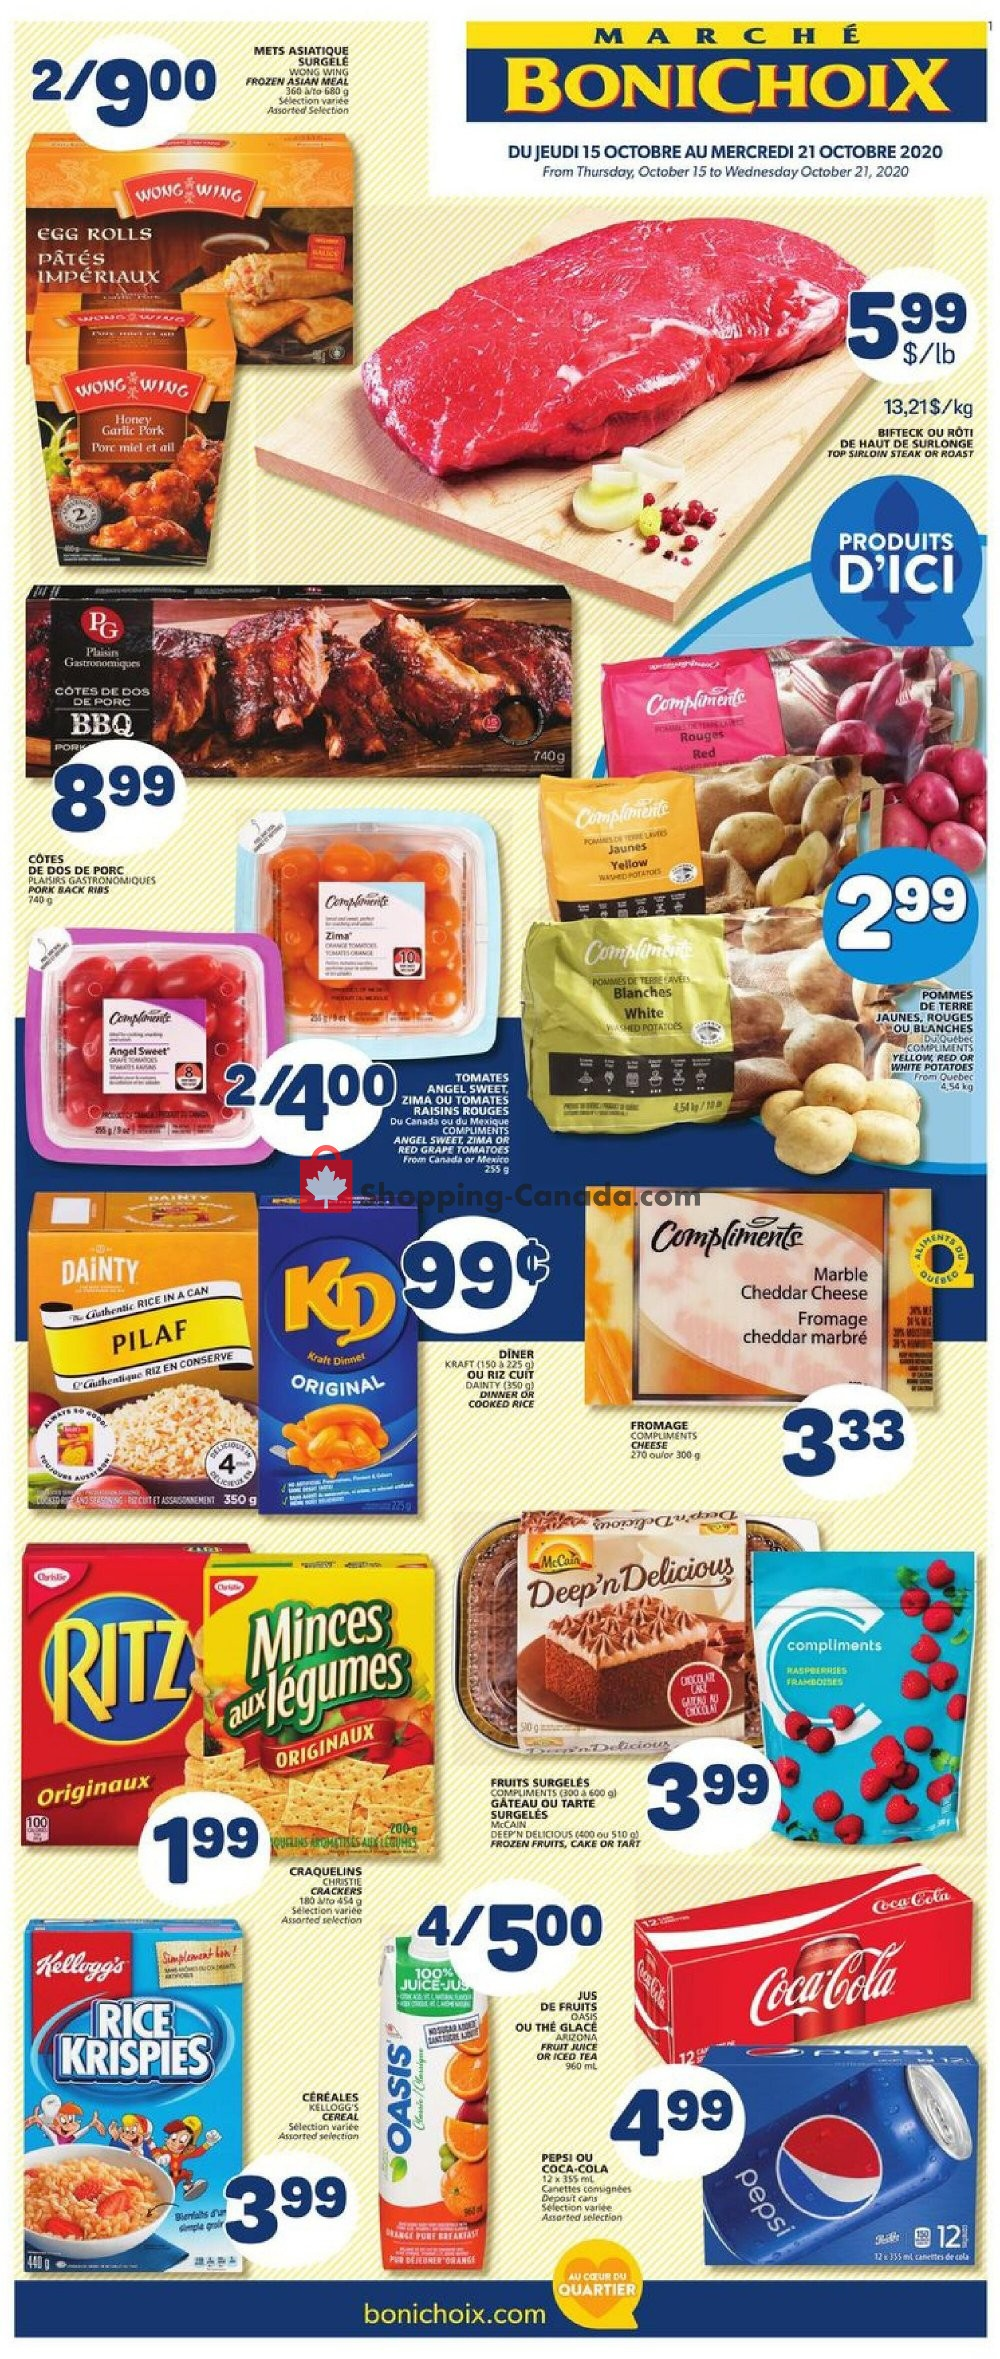 Flyer Marche Bonichoix Canada - from Thursday October 15, 2020 to Wednesday October 21, 2020